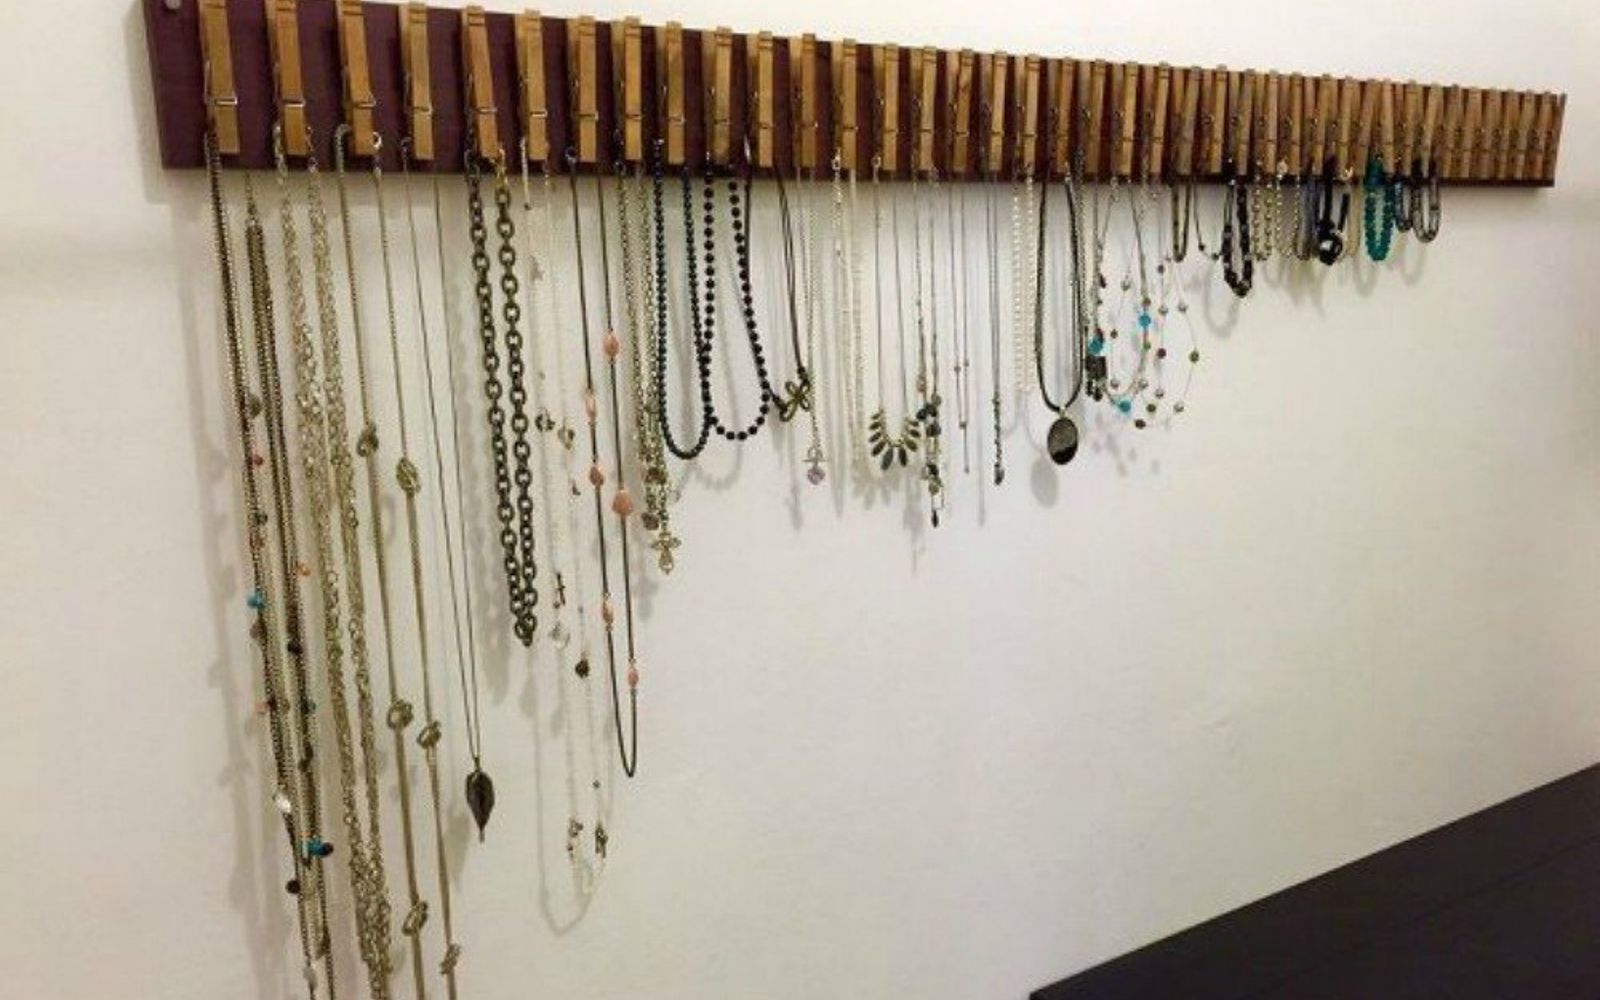 s 21 jewelry organizing ideas that are better than a jewelry box, organizing, This incredible line of clothespins